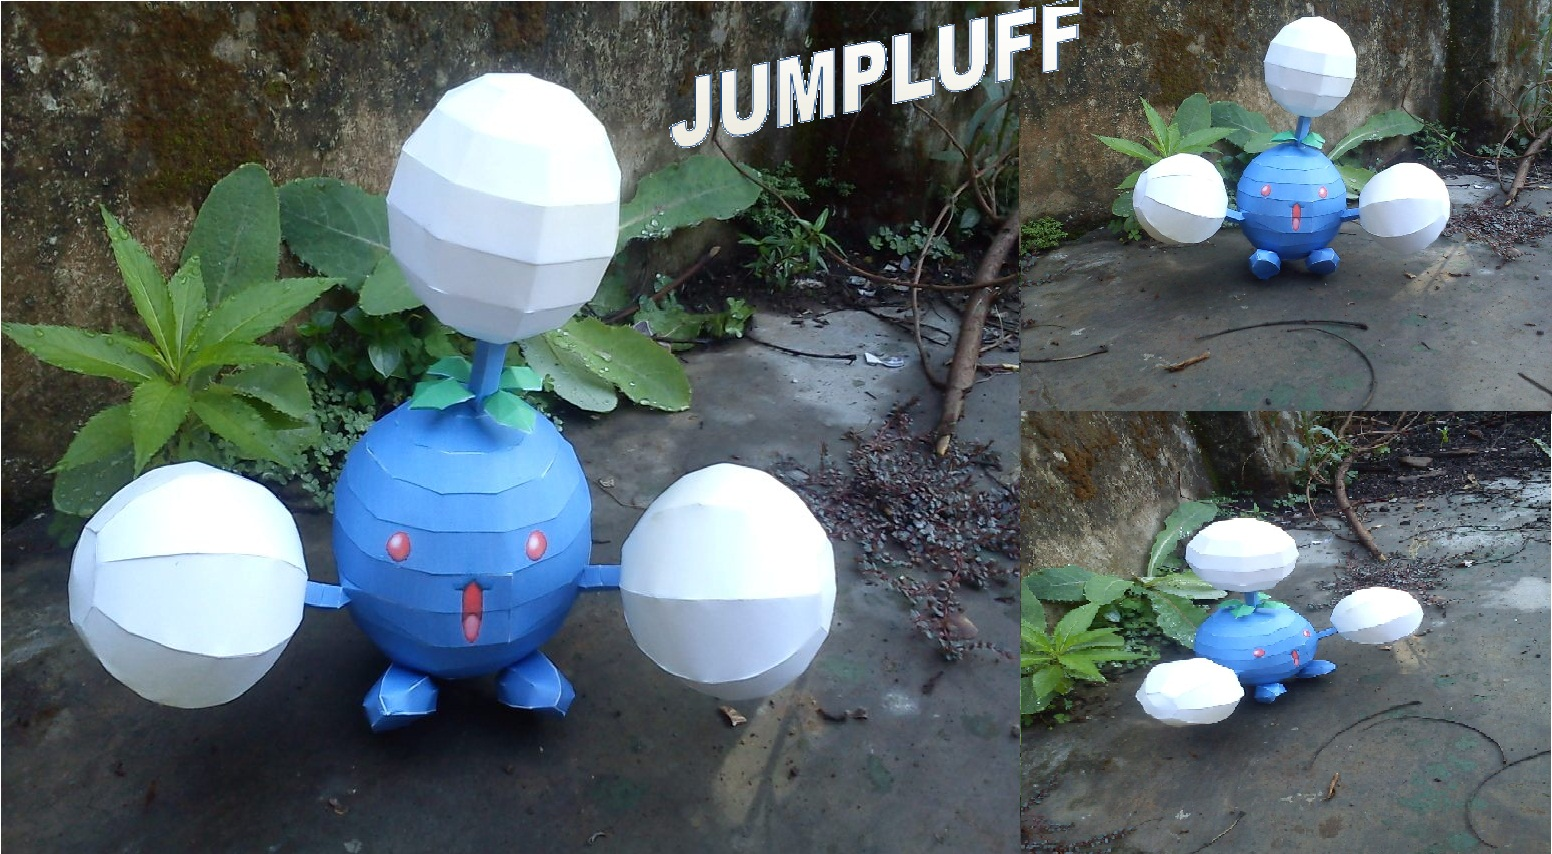 POkemon Jumpluff Papercraft